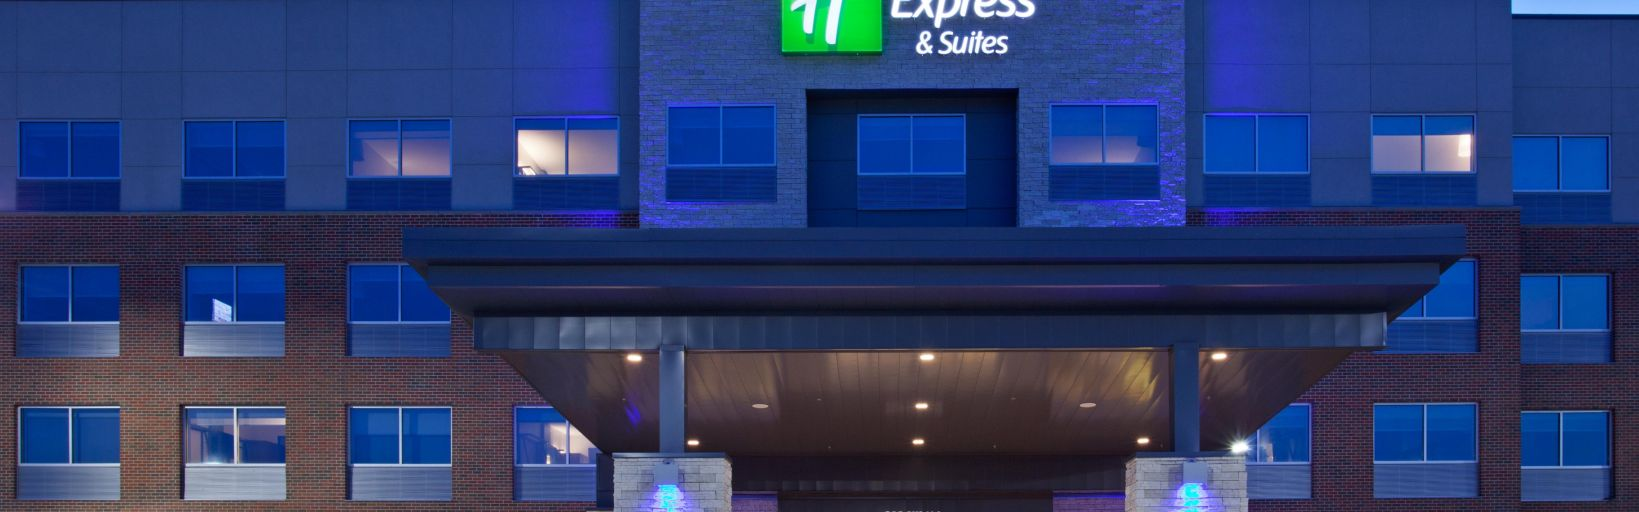 holiday inn express suites des moines downtown des moinesの